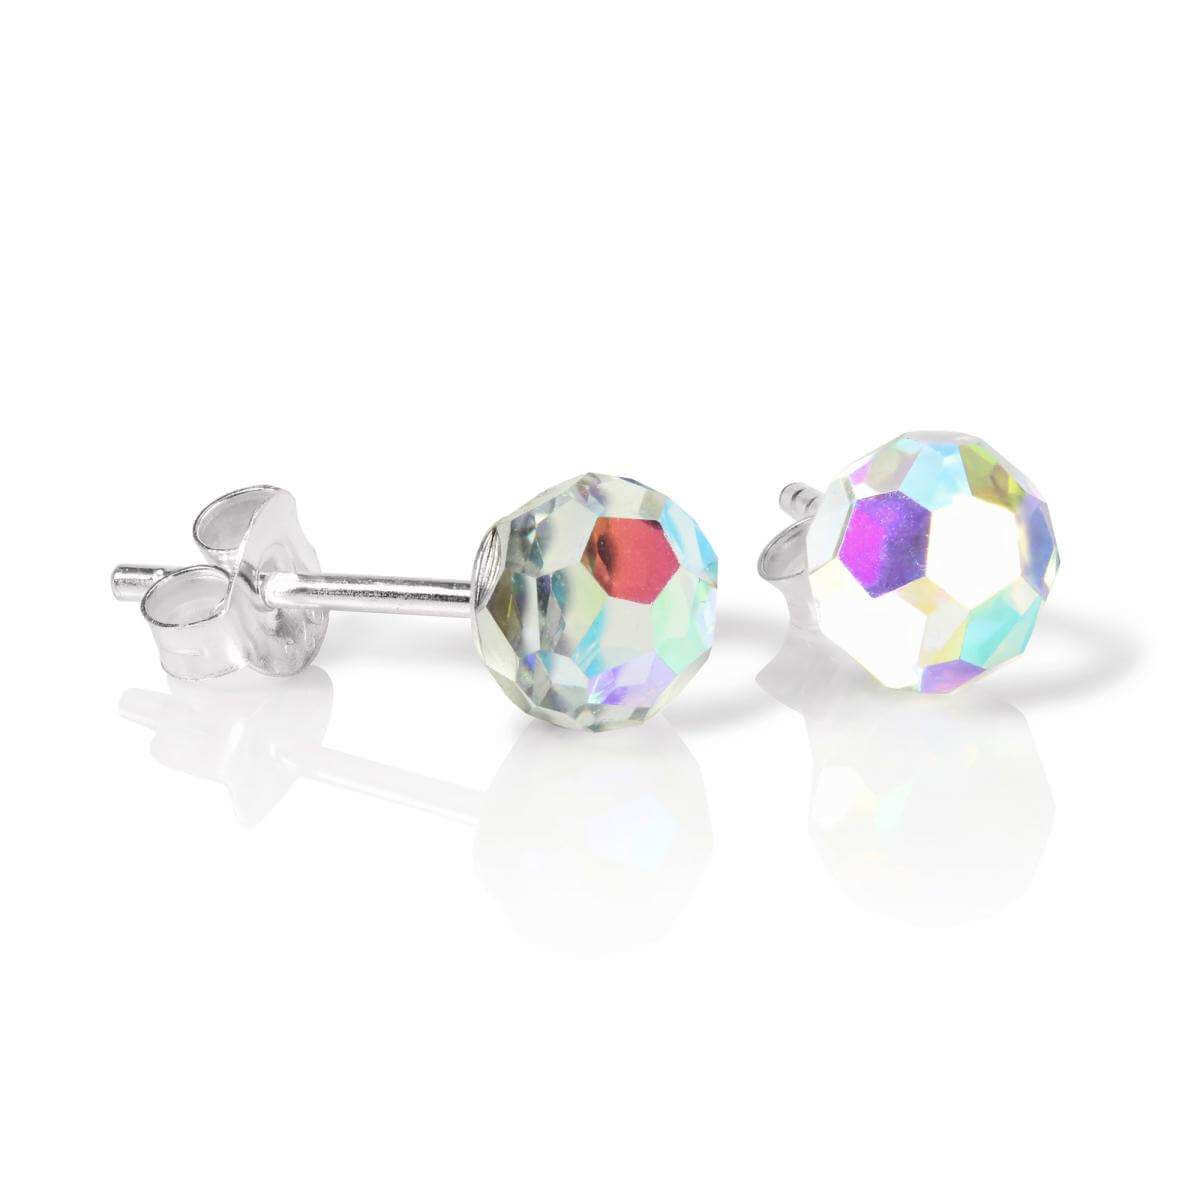 711dd3bd1 Sterling Silver & Aurora Borealis Faceted 6mm Crystal Ball Stud Earrings |  JewelleryBox.co.uk